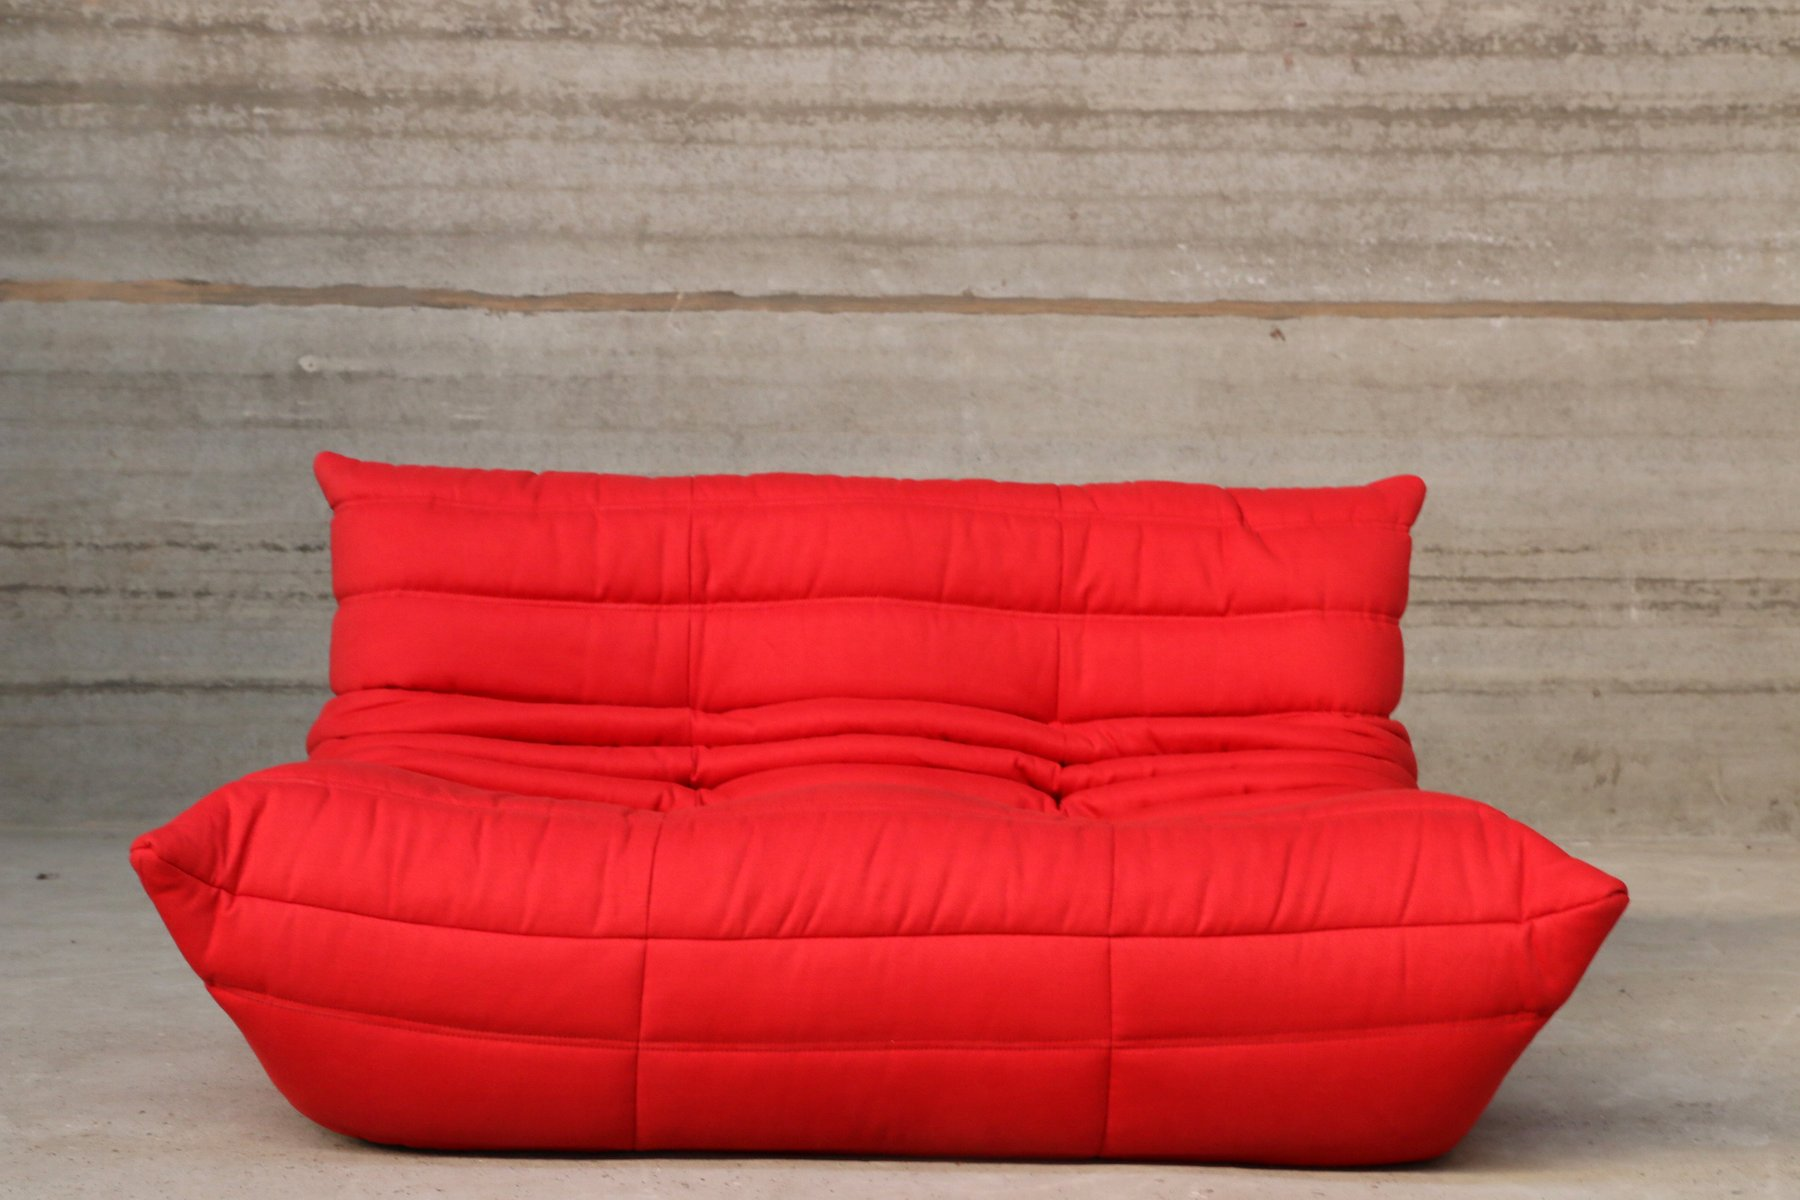 canap deux places togo vintage rouge par ligne roset en vente sur pamono. Black Bedroom Furniture Sets. Home Design Ideas